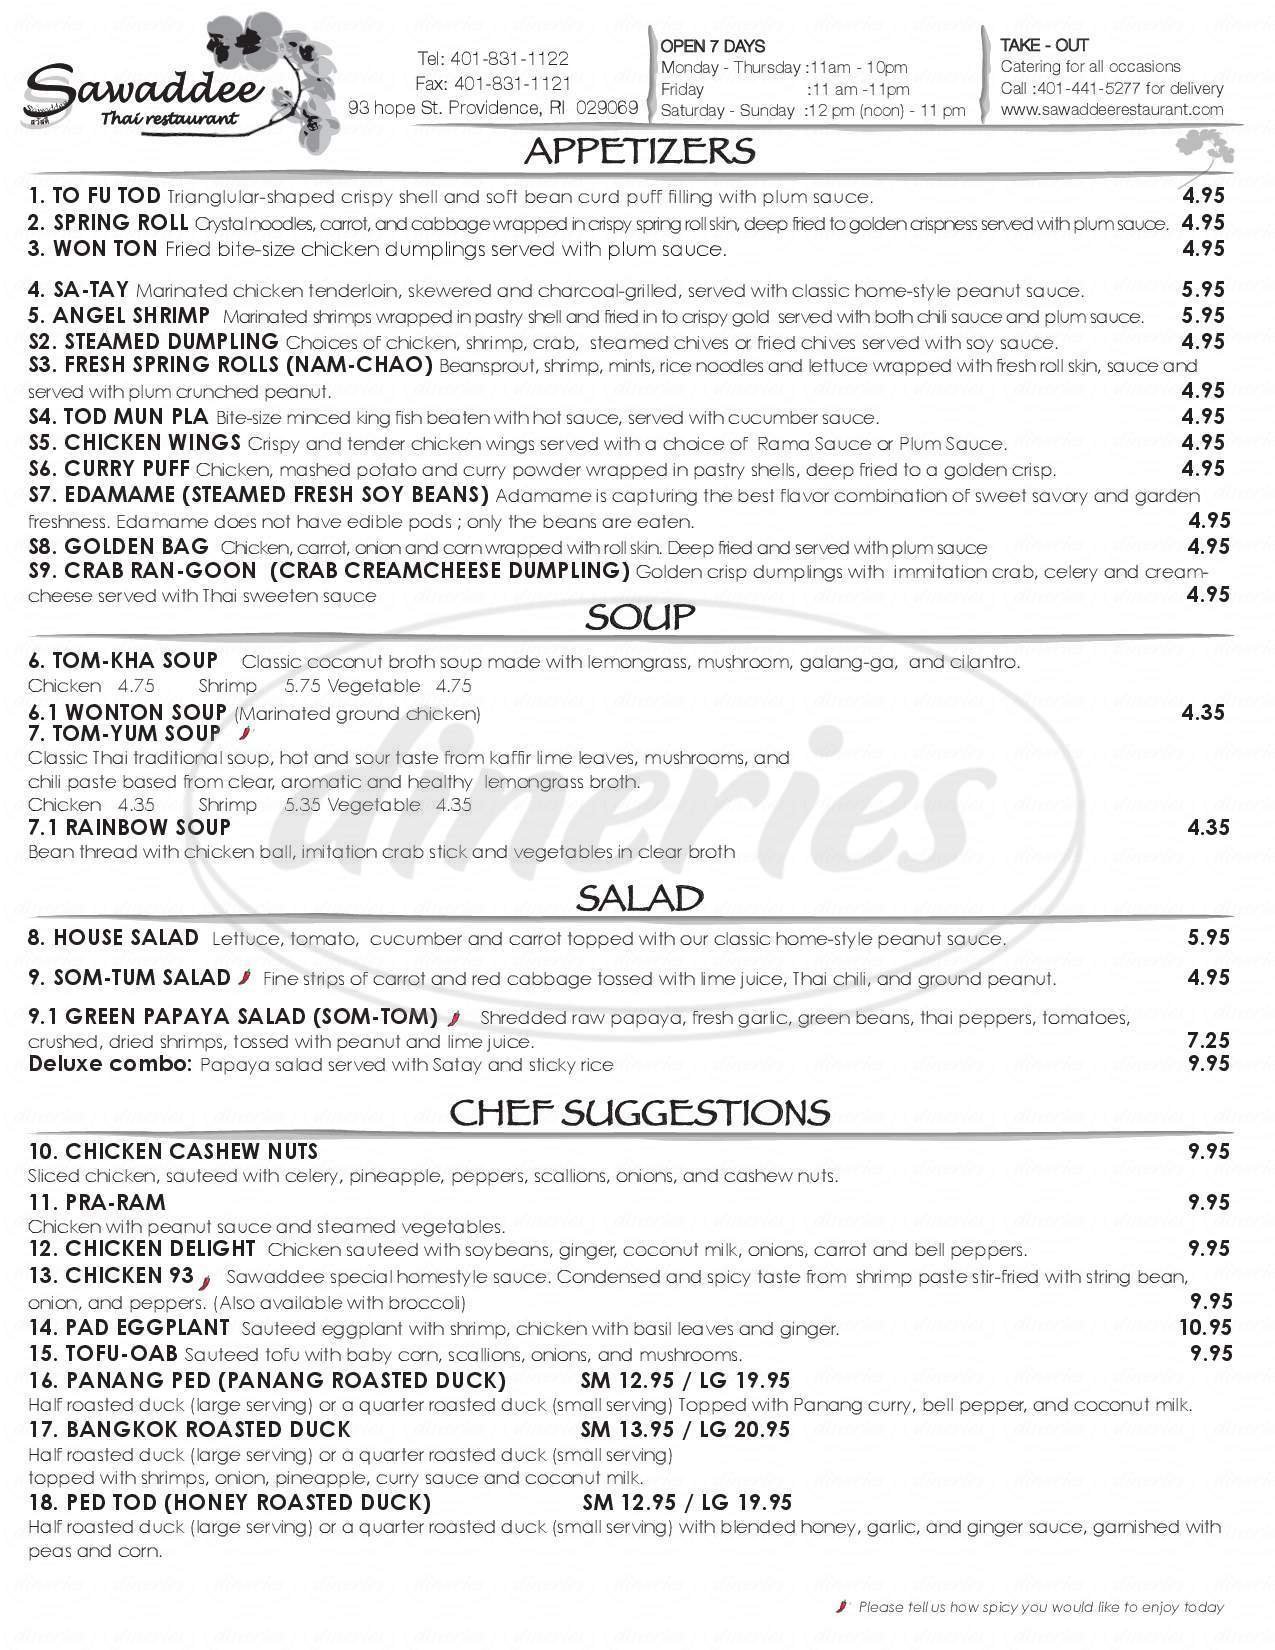 menu for Sawaddee Thai Restaurant